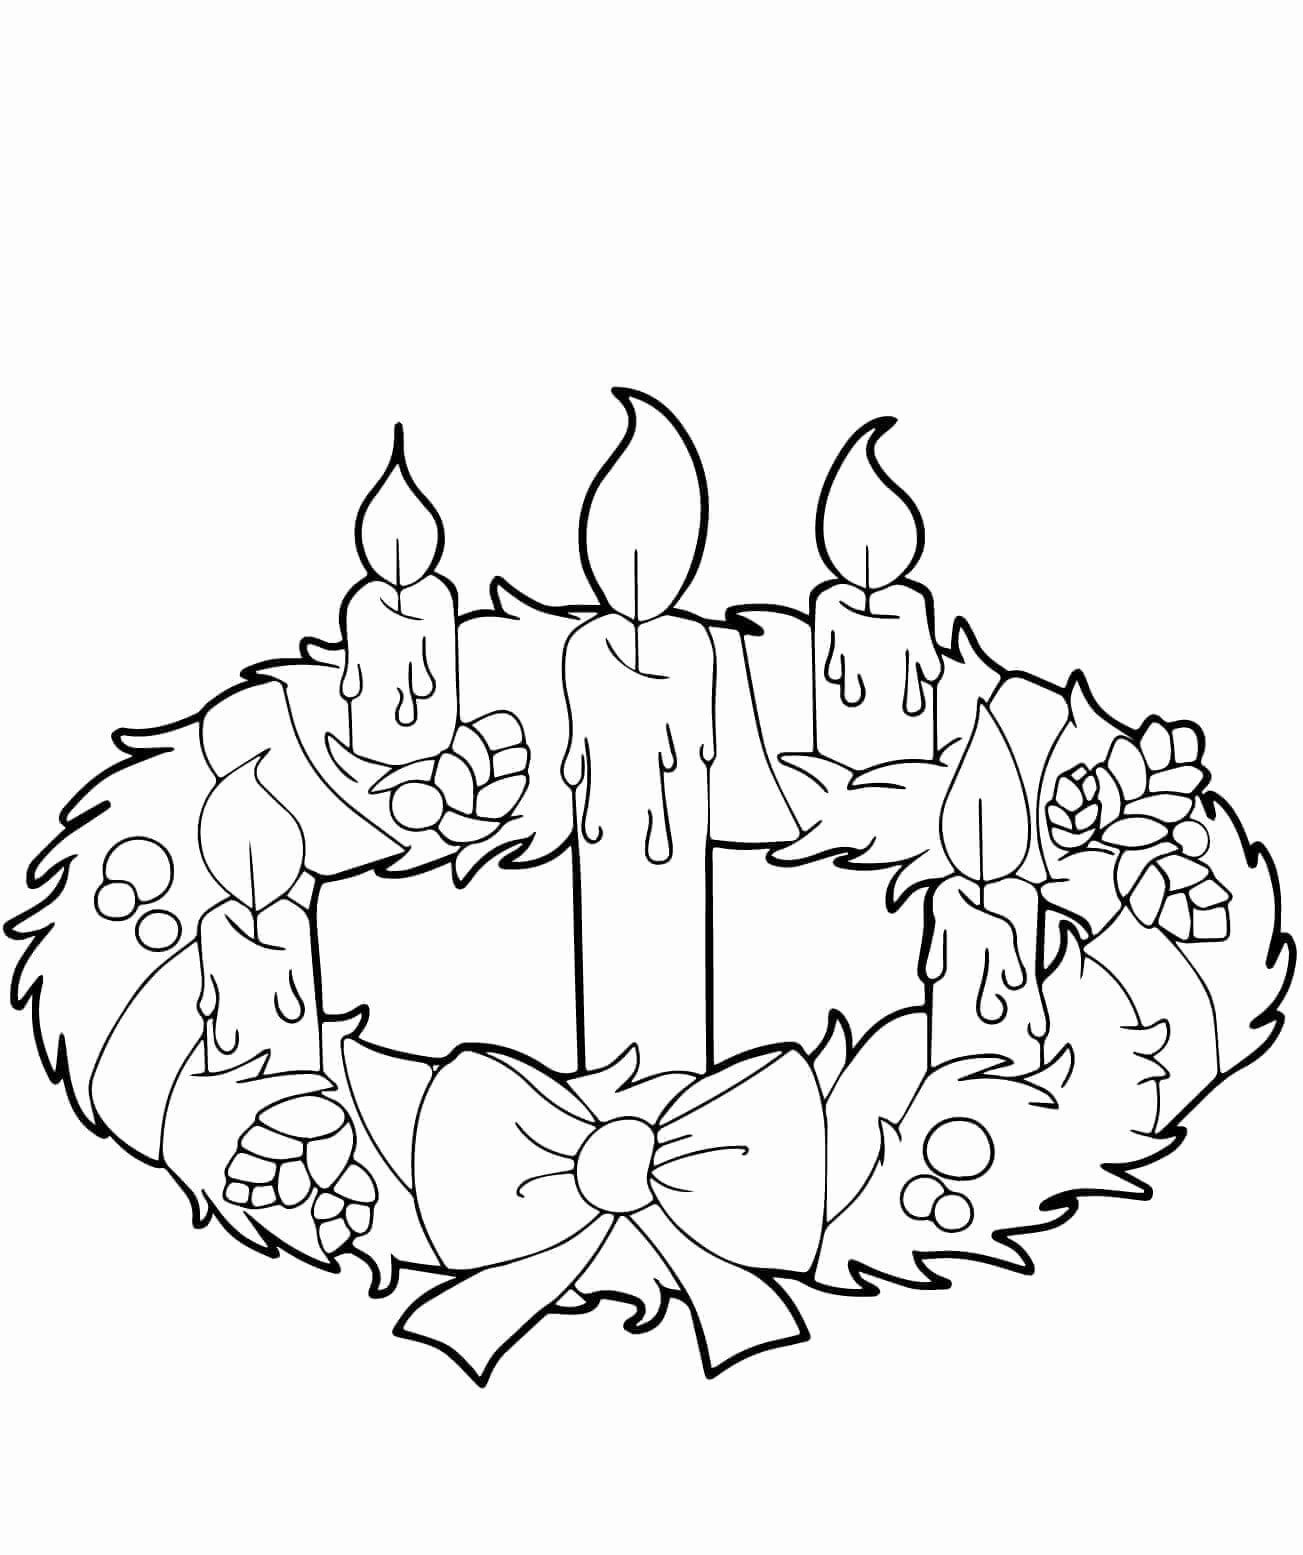 Advent Wreath Coloring Page Catholic Beautiful 30 Free Christmas Wreath Coloring Pages Prin Advent Coloring Advent Coloring Sheets Coloring Pages Inspirational